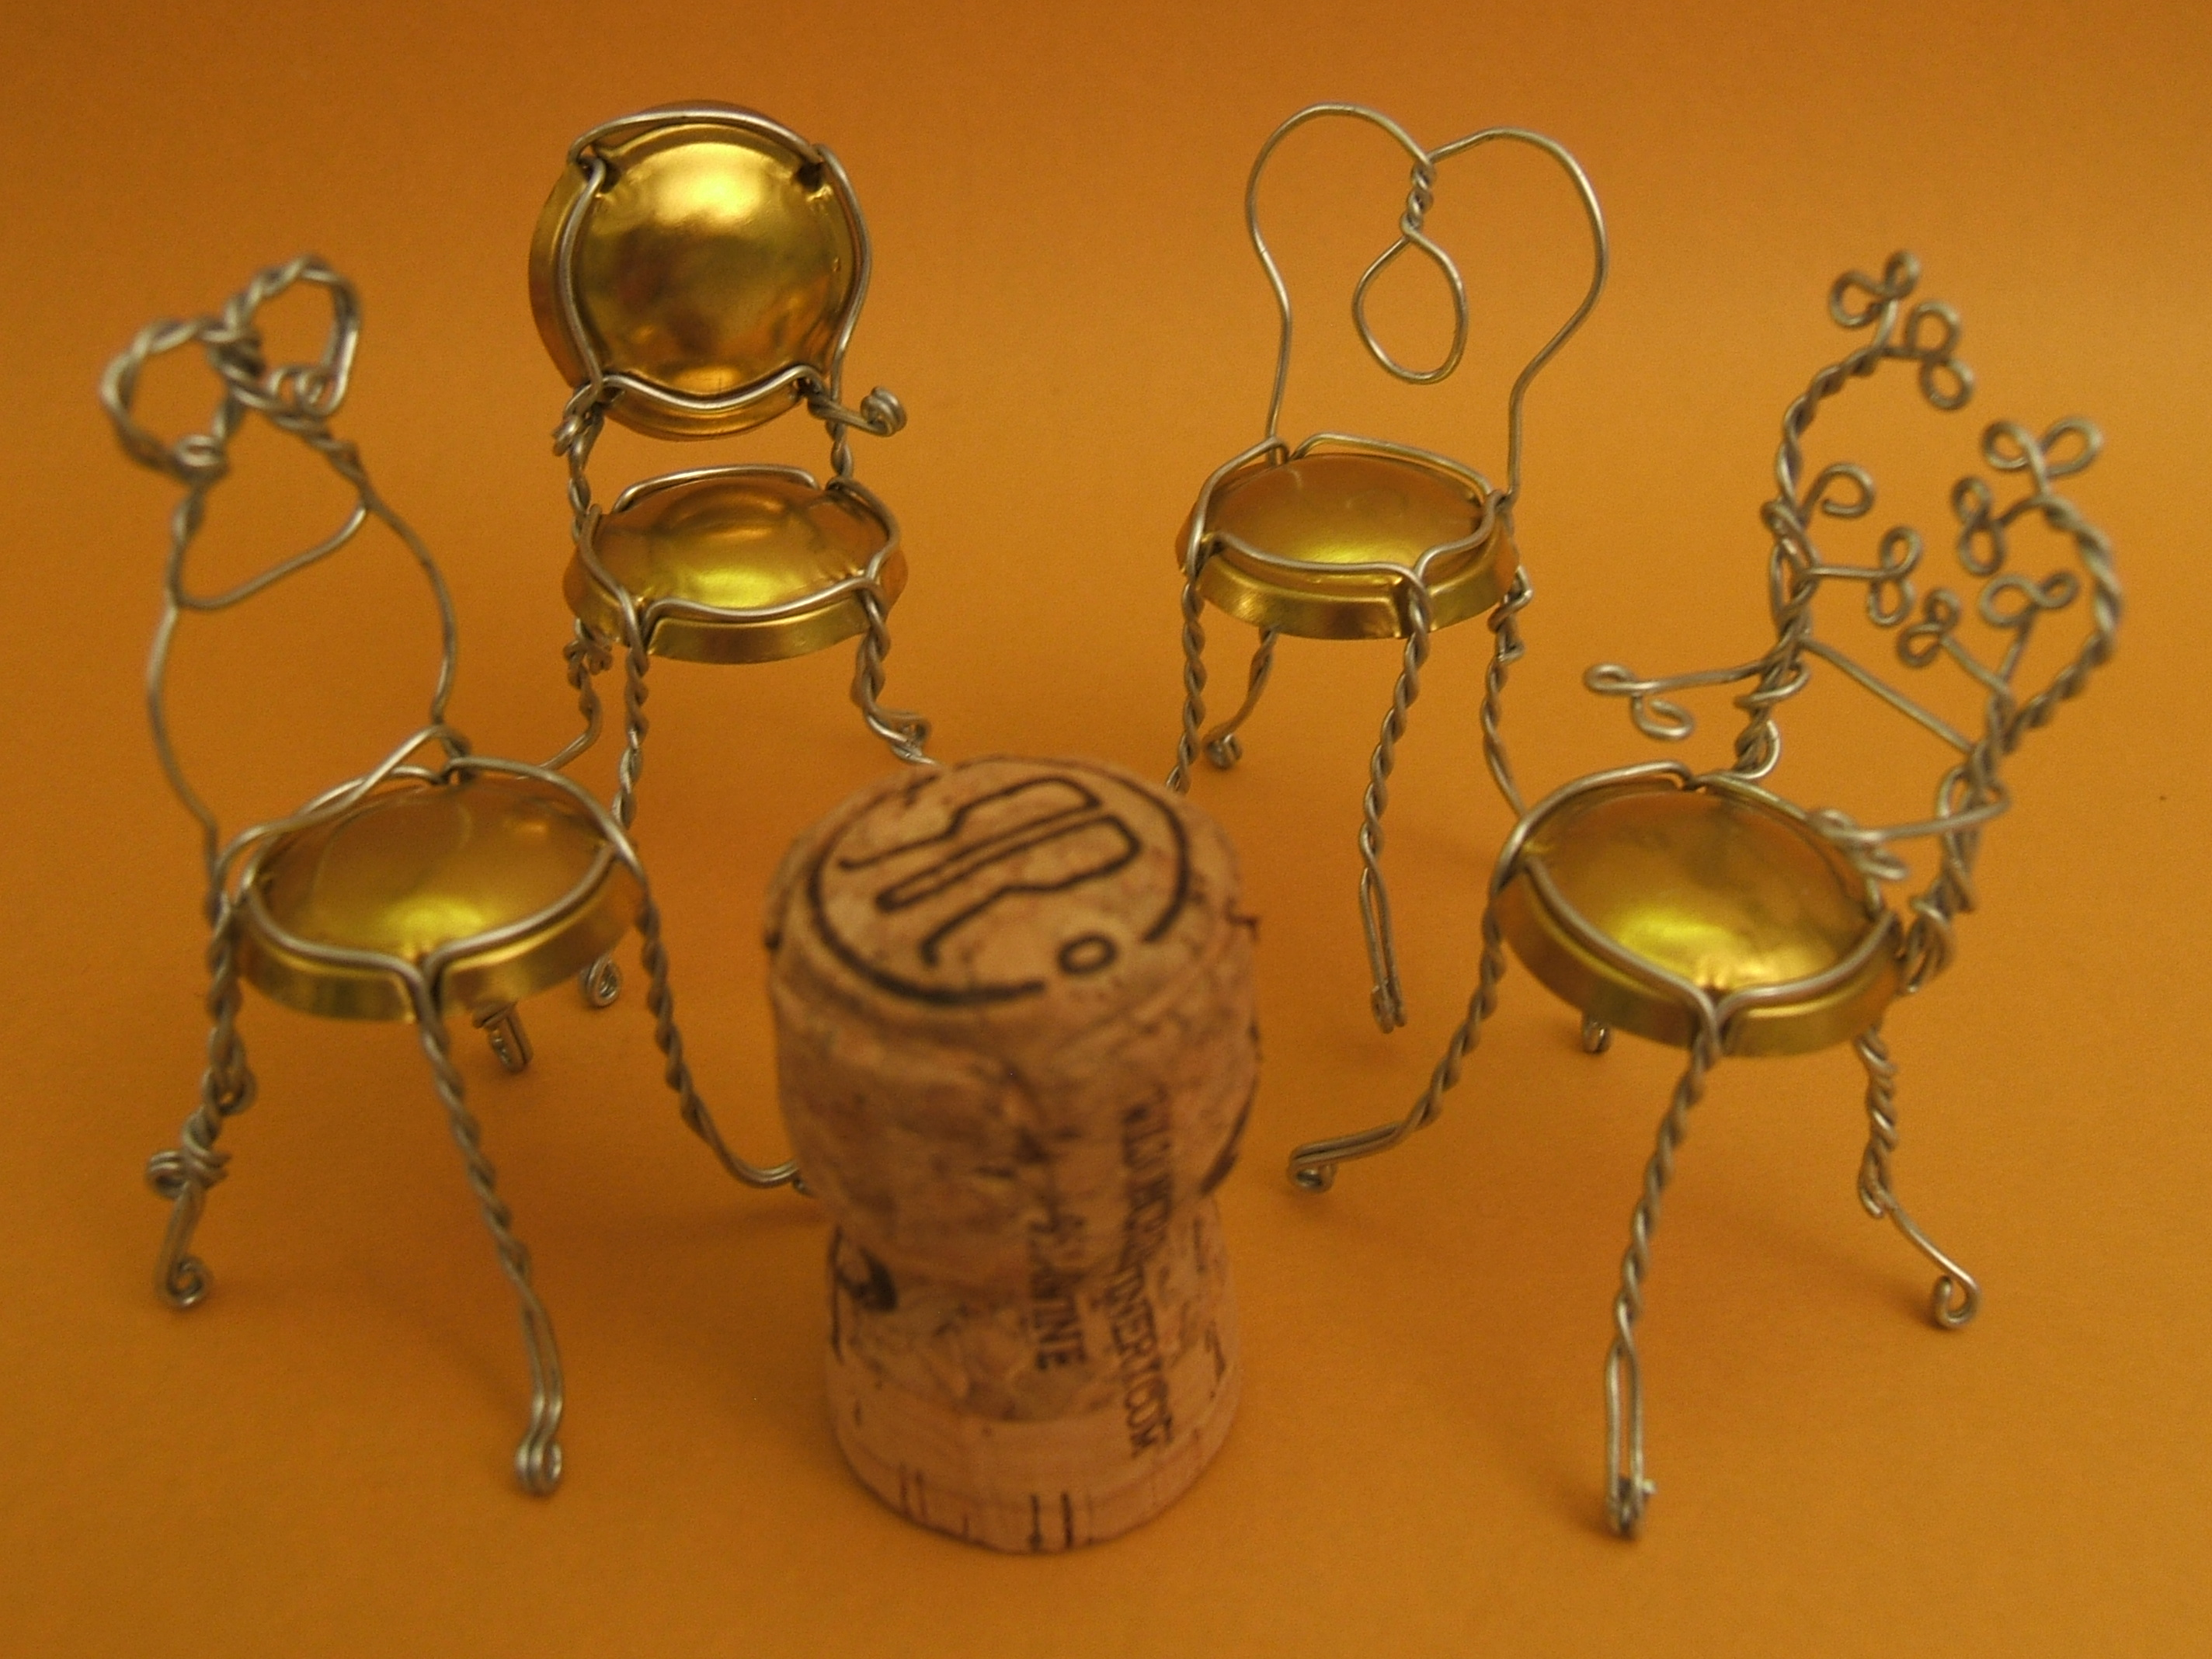 Champagne Chair Champagne Cage Chairs Redux Musings On Muselets The